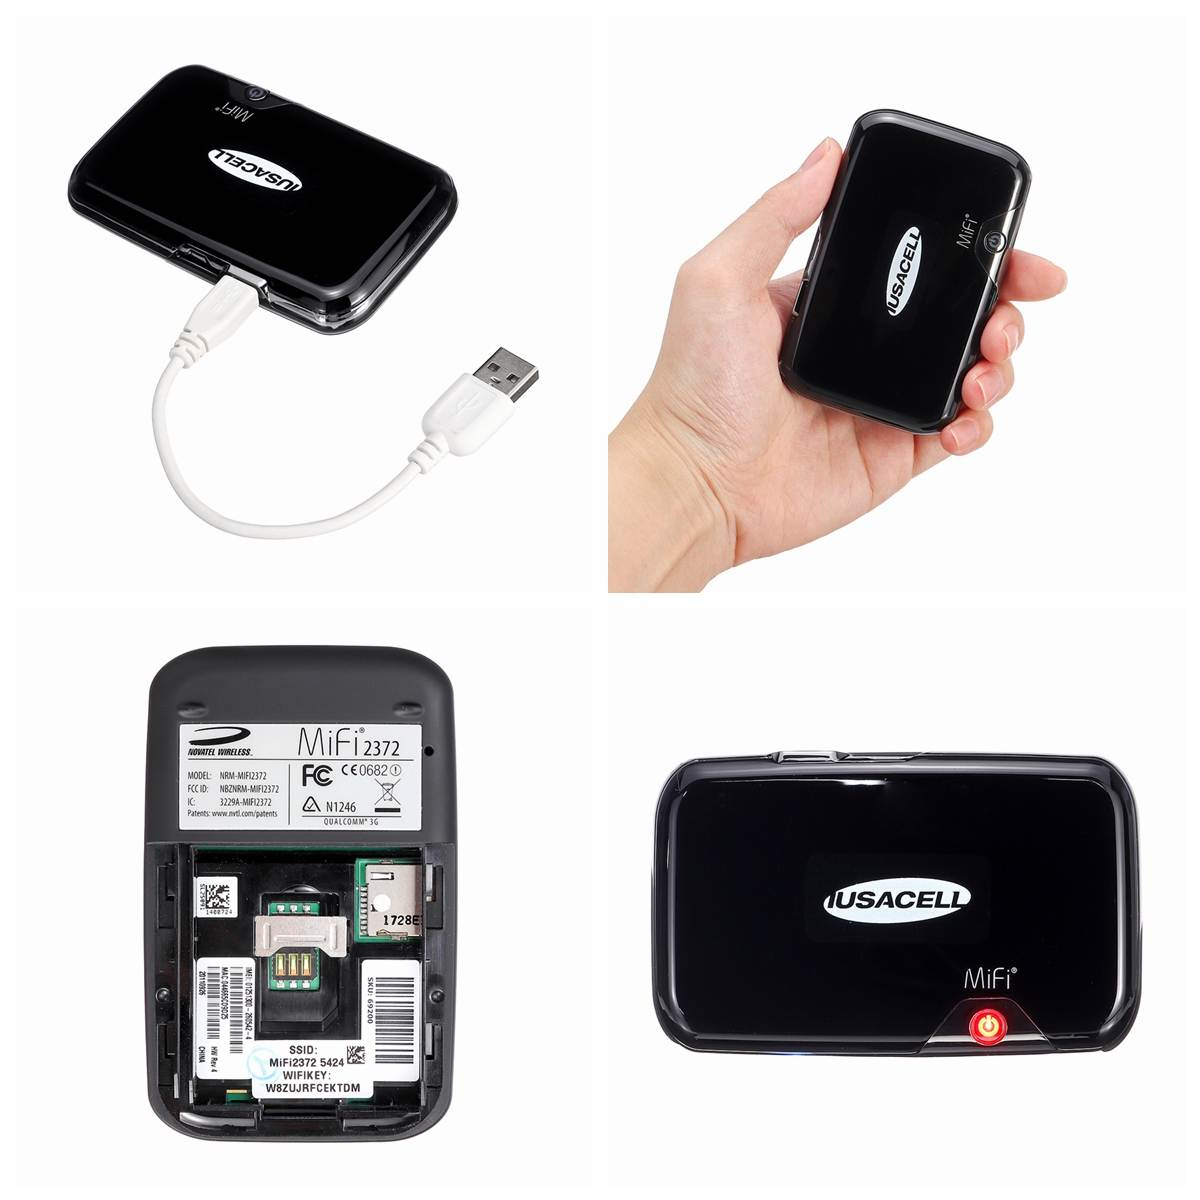 Image 4 - MF2372 3G Pockets Wifi Router Portable Car Mobile Wifi Hotspot Wireless Broadband Unlockeds Modem 850/900/1800/1900/2100MHz-in Wireless Routers from Computer & Office